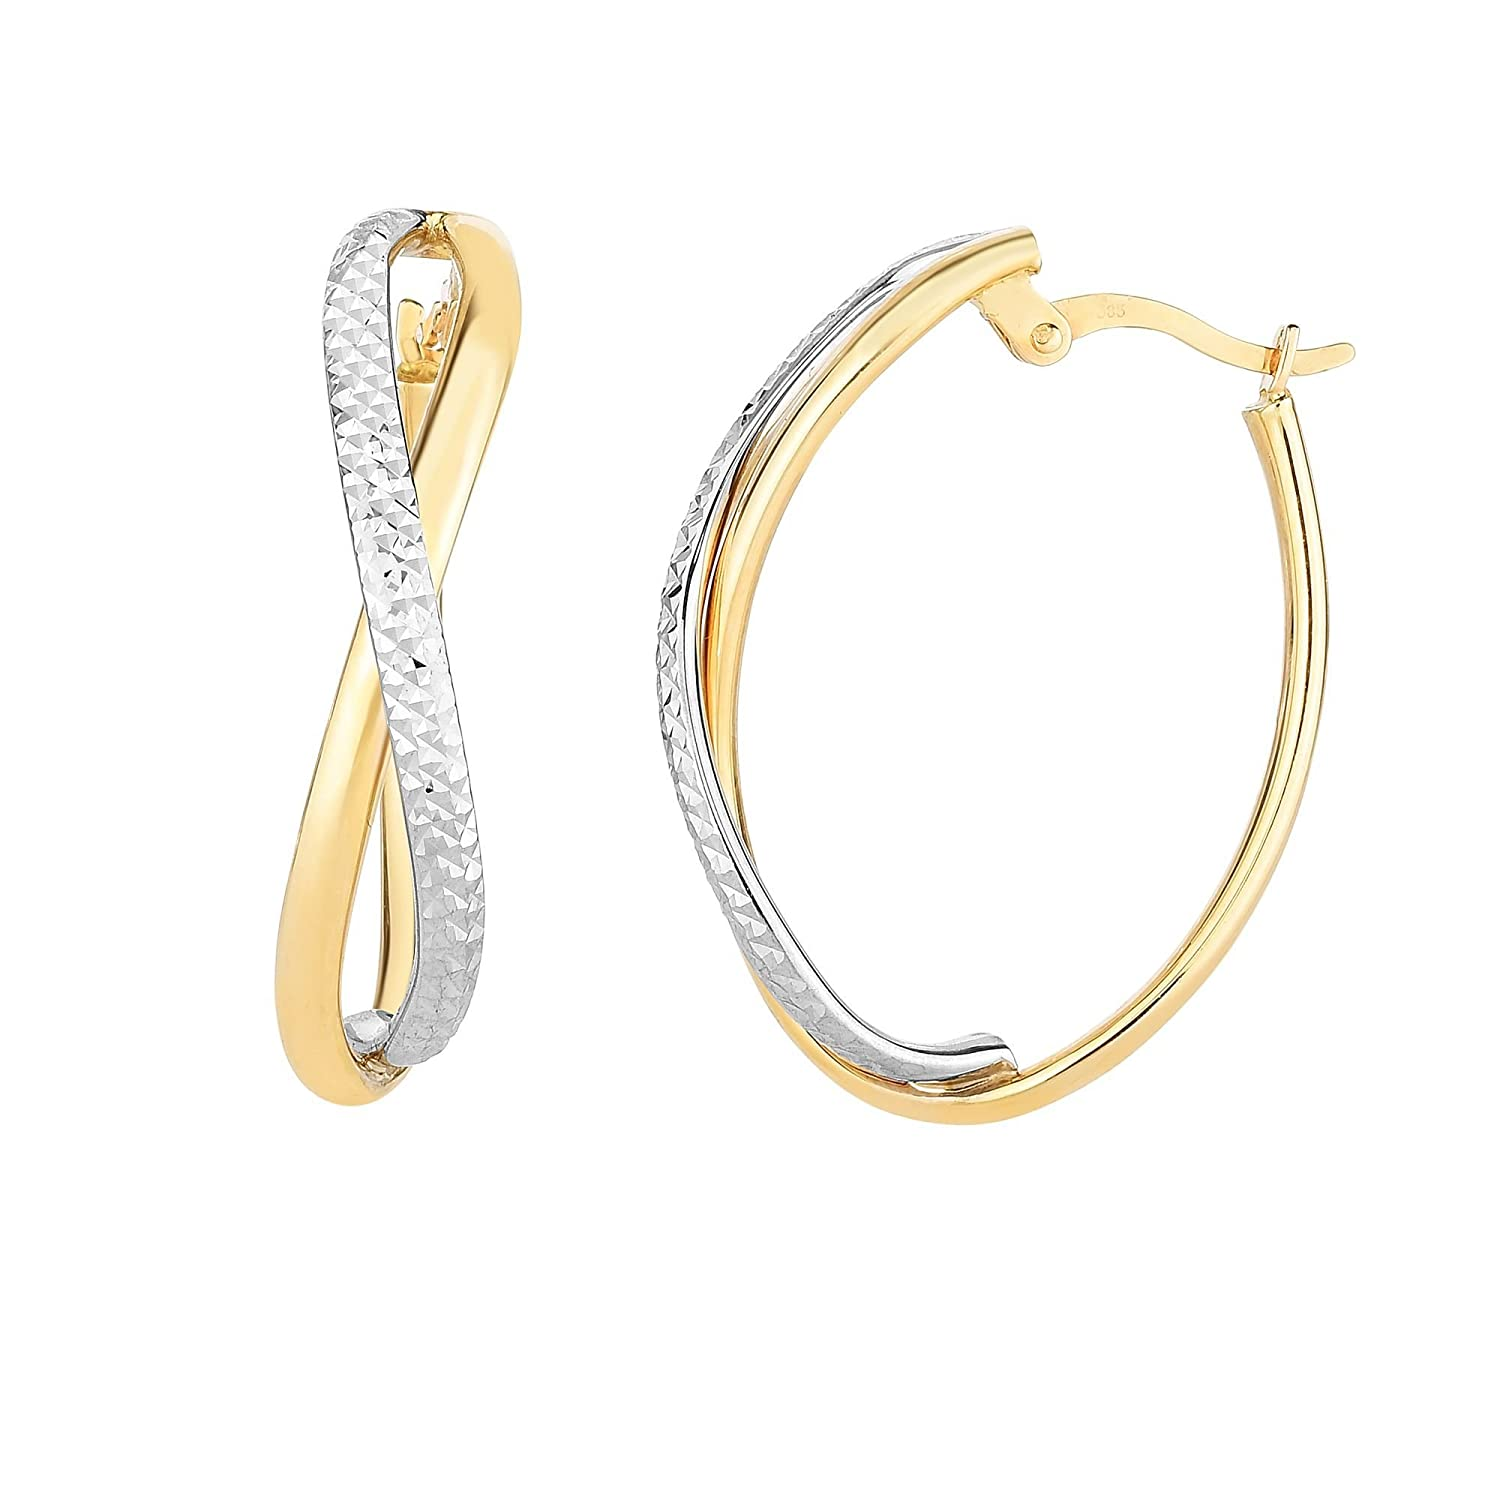 14Kt Yellow and White Gold 25X8X6.5mm Shiny+Diamond Cut Two Tone Infinity Oval Hoop Earring with Hinged Clasp